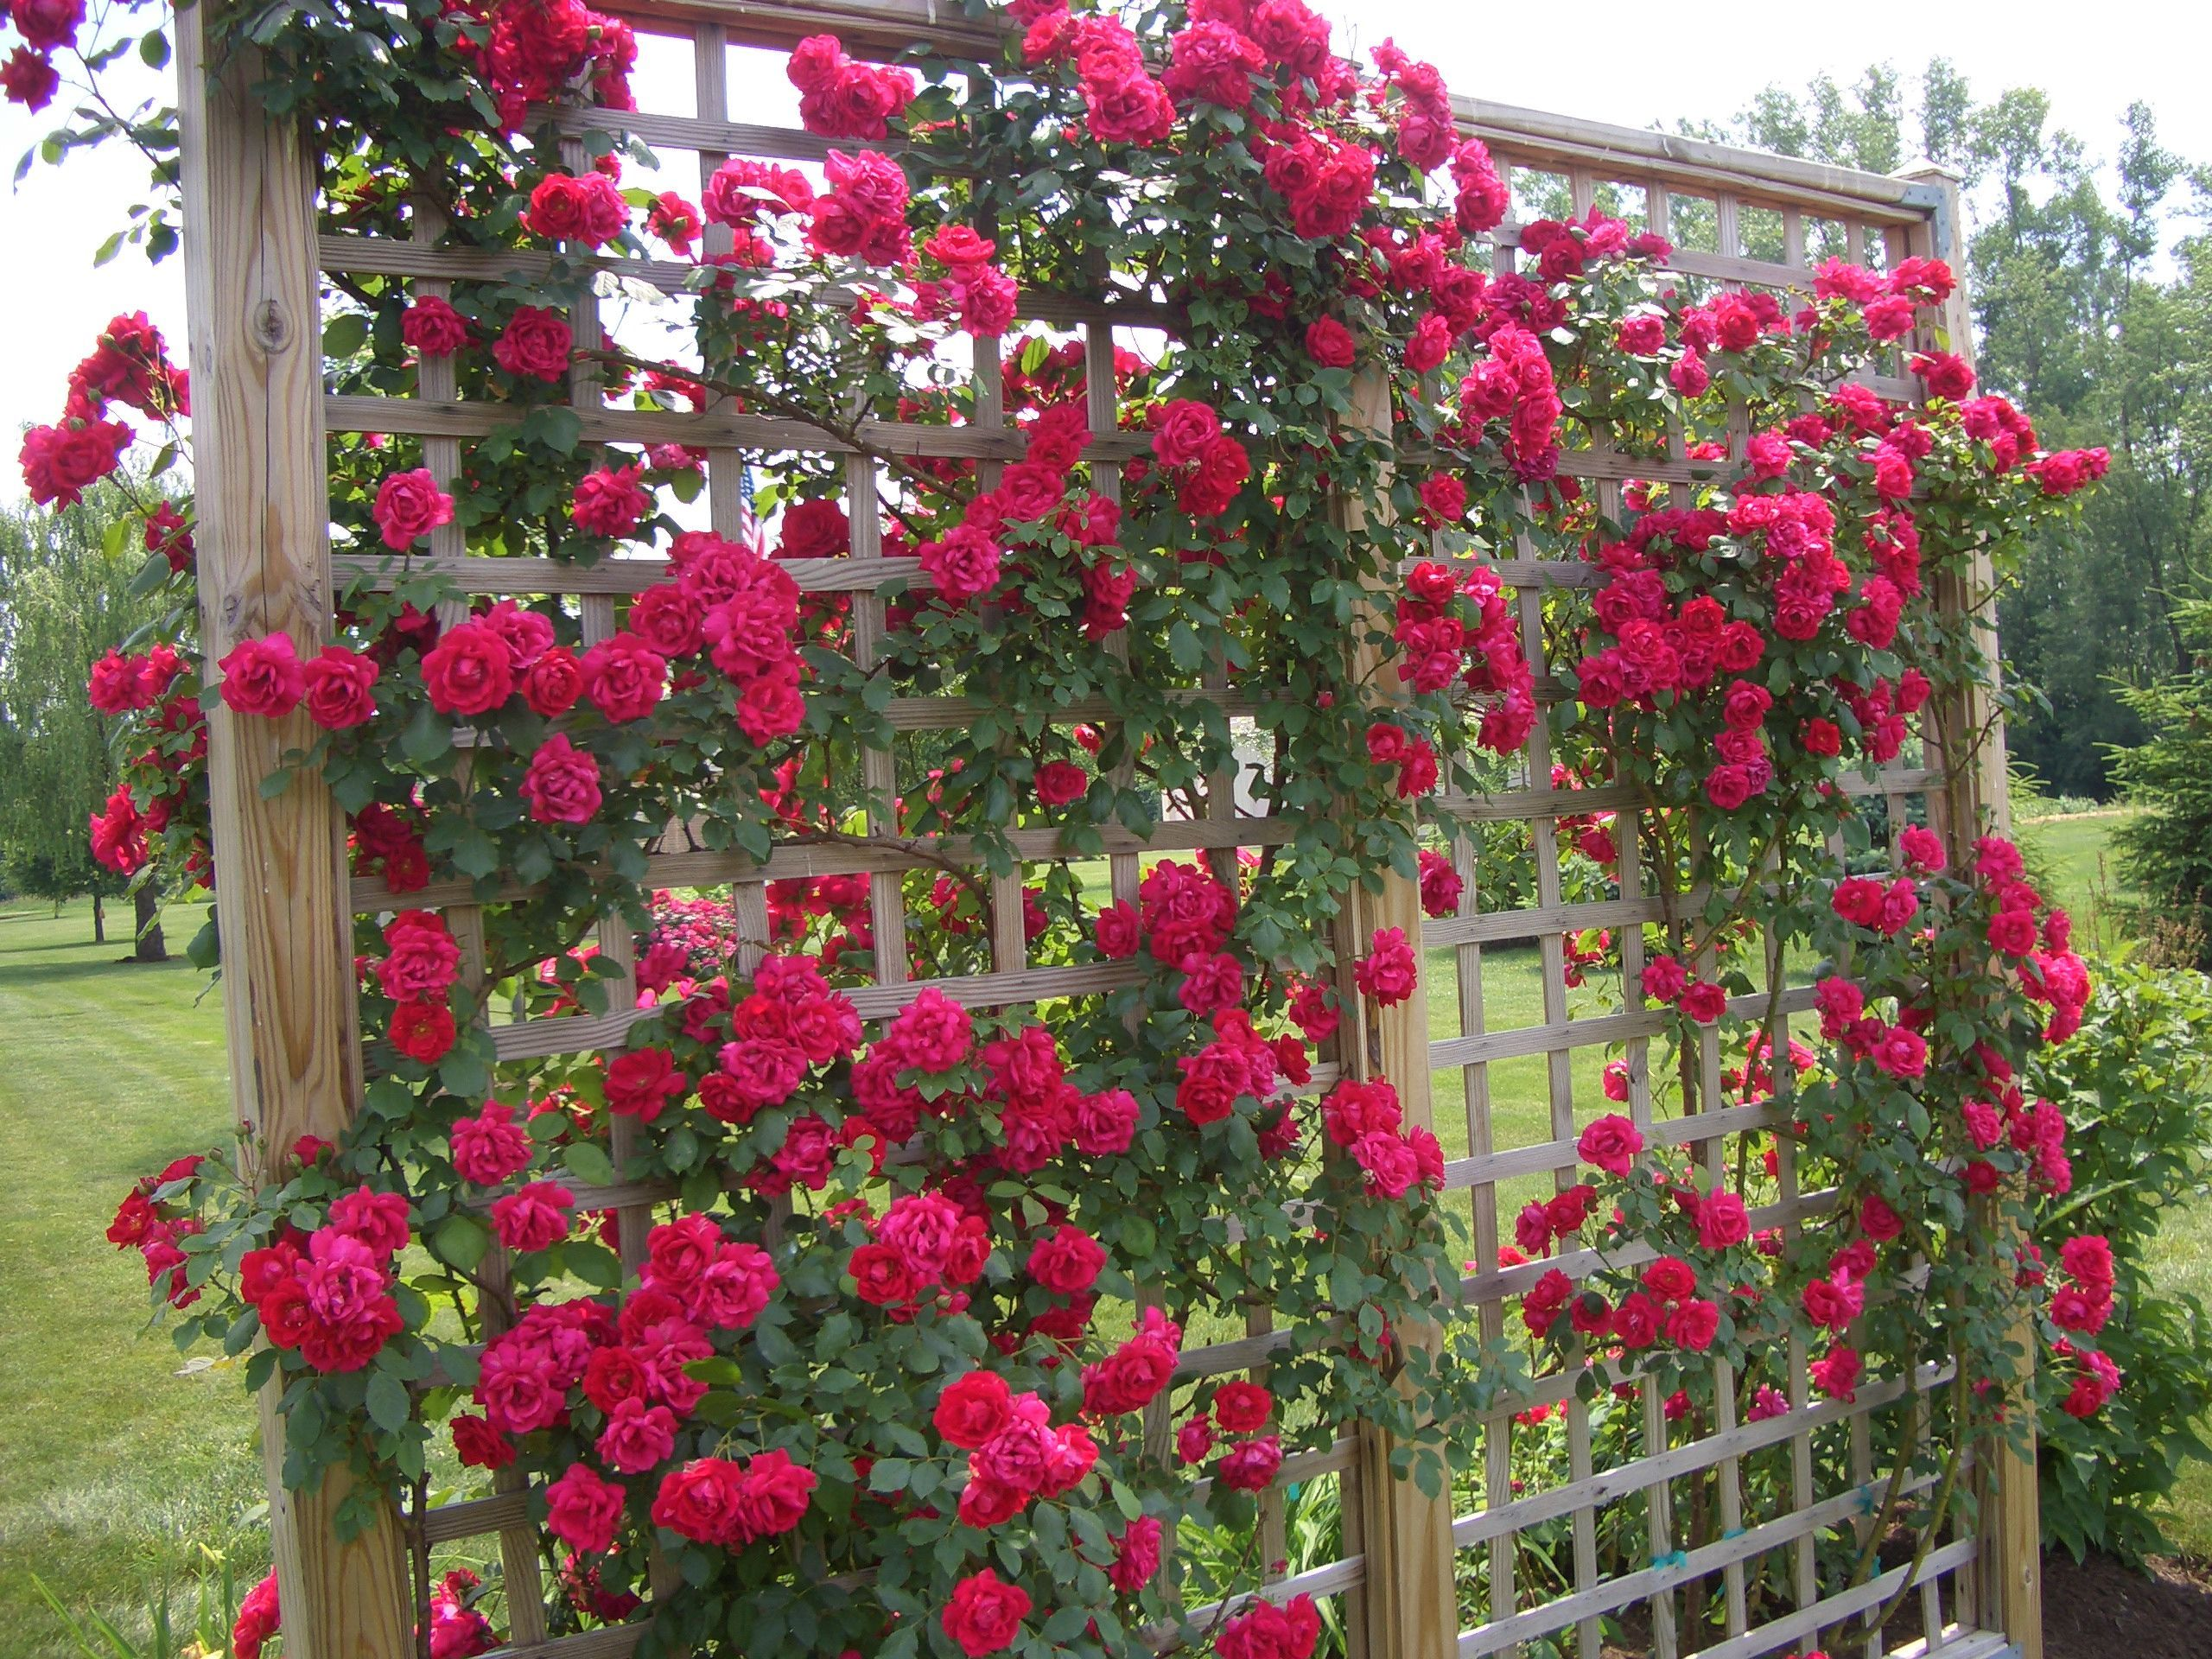 climbing roses prettily grown on rose trellis beautiful garden concept for backyard or front. Black Bedroom Furniture Sets. Home Design Ideas